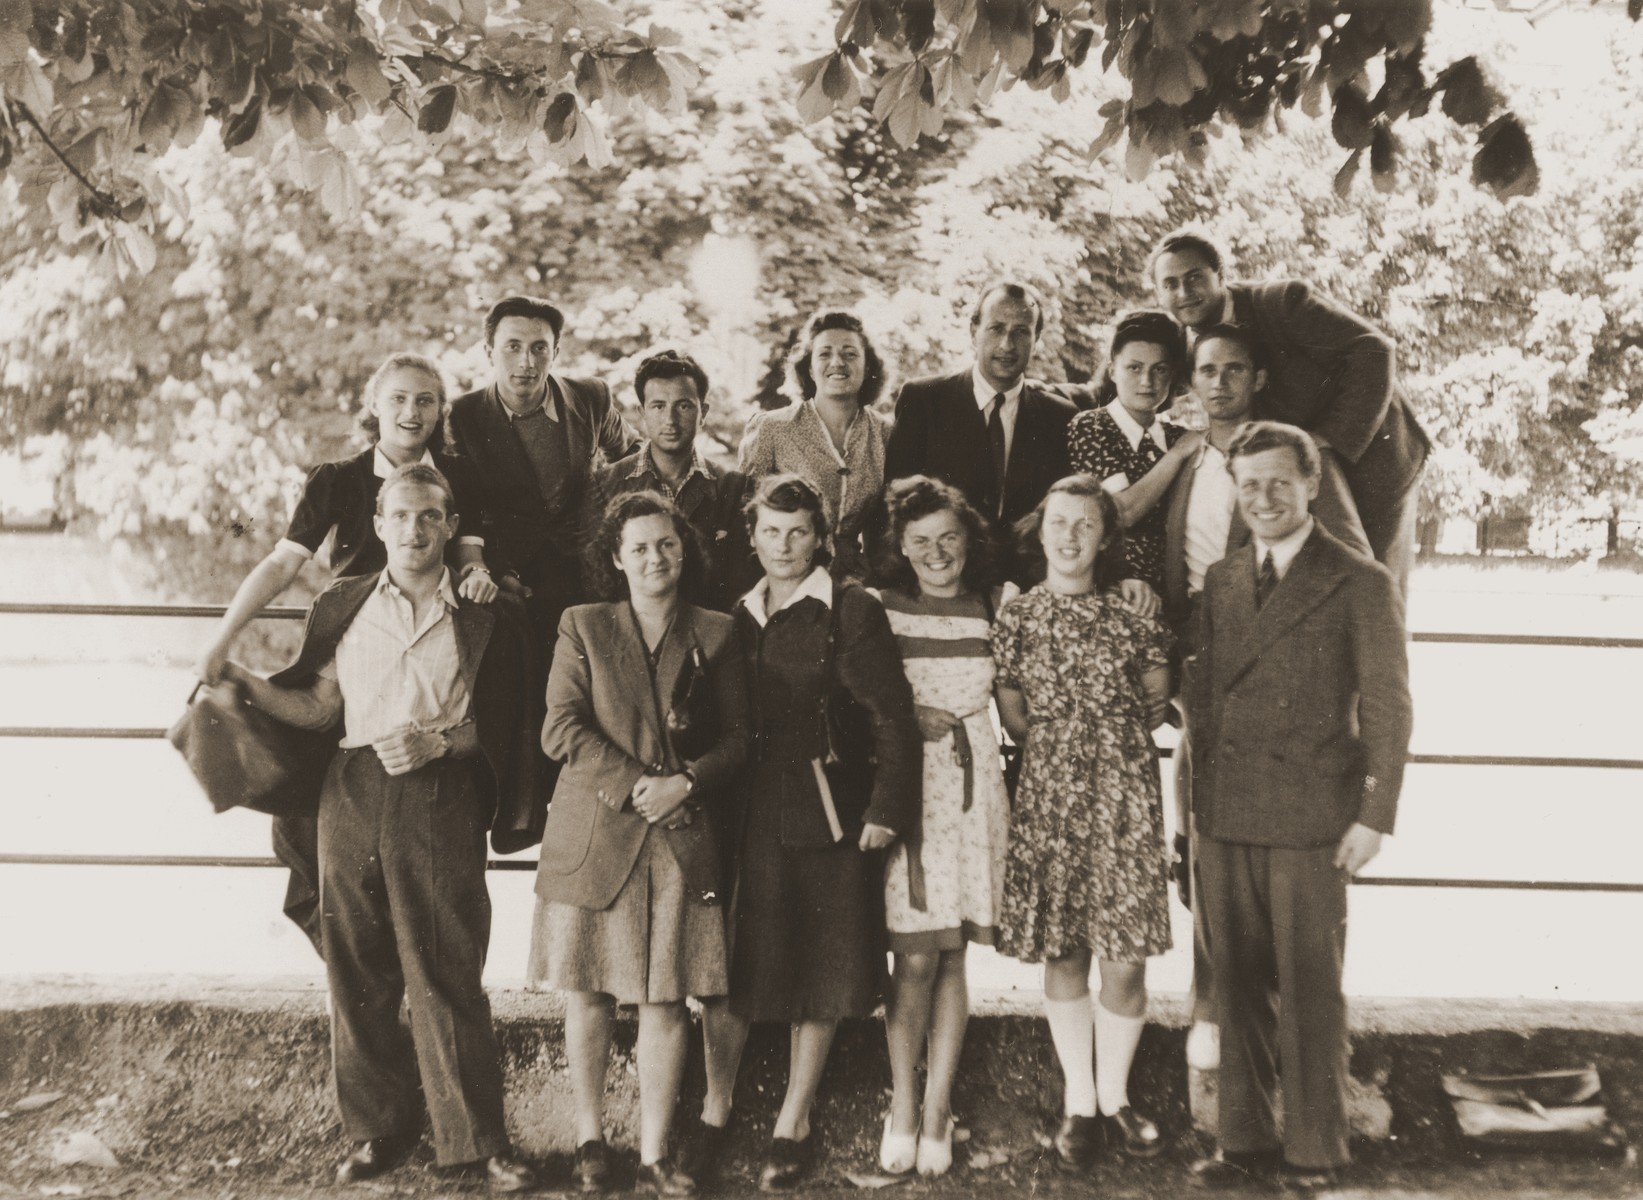 Group portrait of Jewish DP college students in Munich.